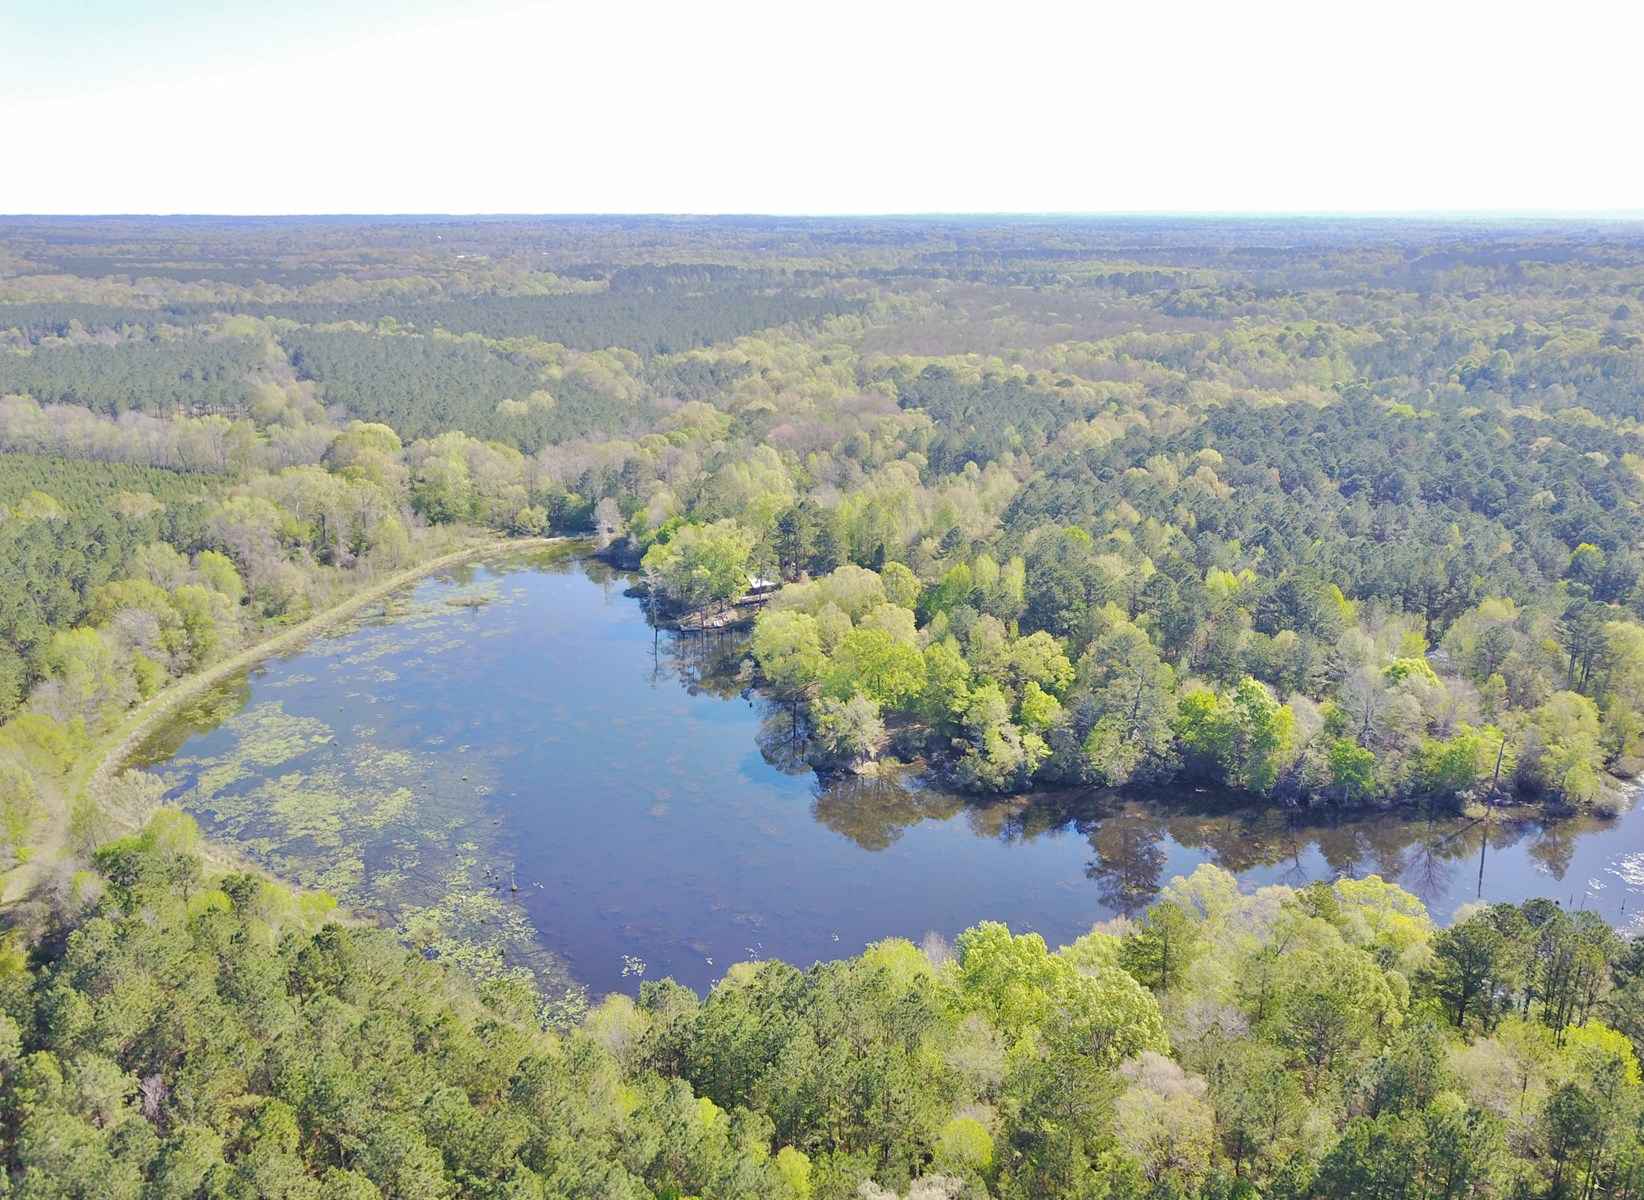 228 Acres, 2 Lodges & Lake for Sale, Wilkinson Co, MS